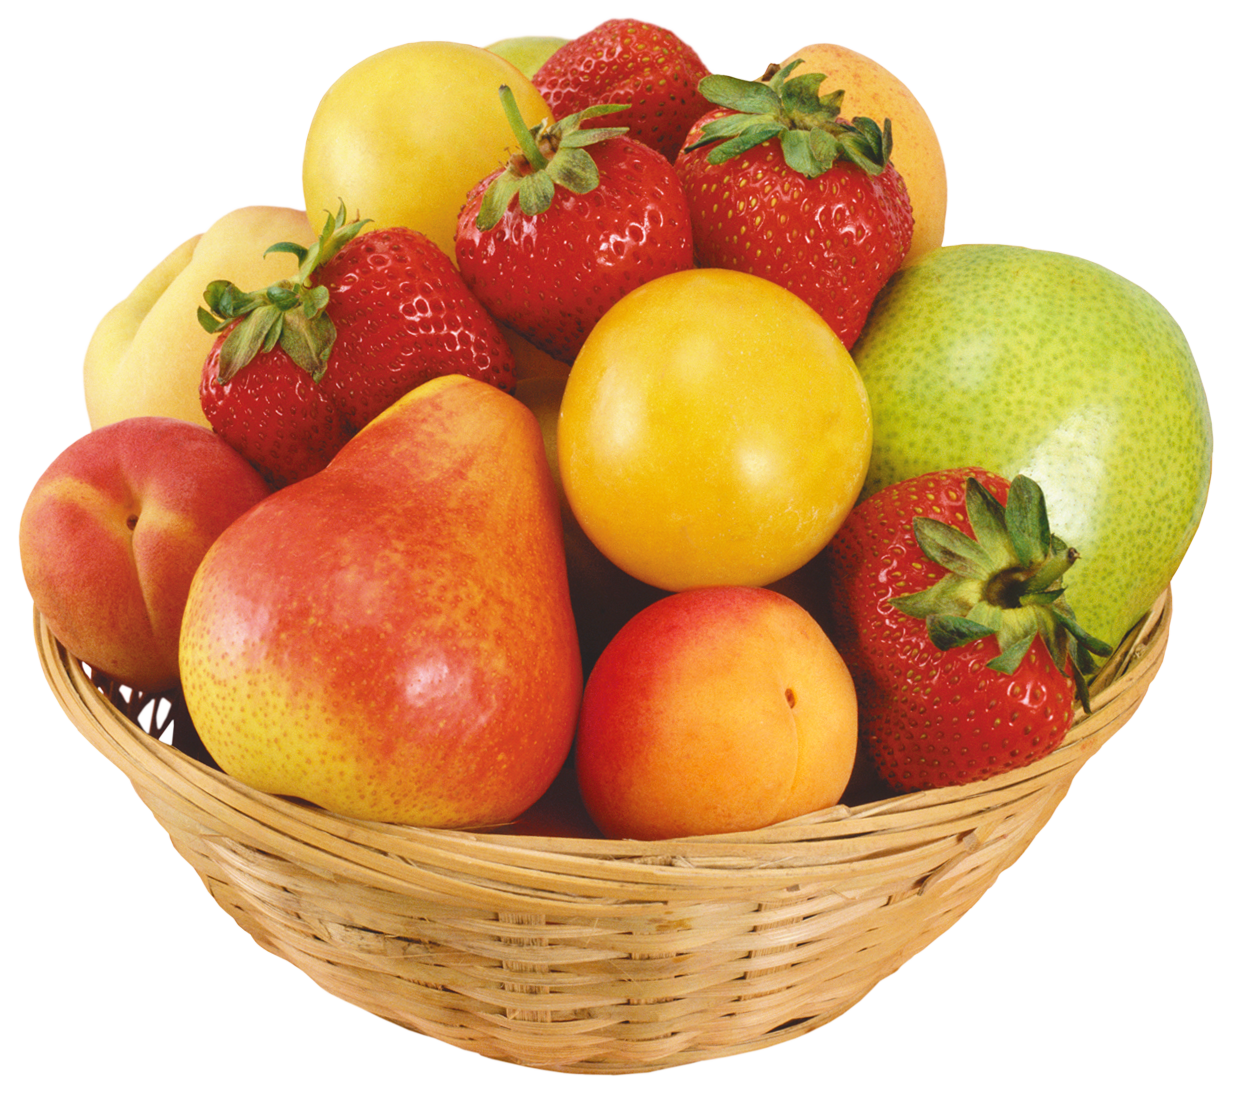 In wicker bowl png. Fruits clipart local fruit